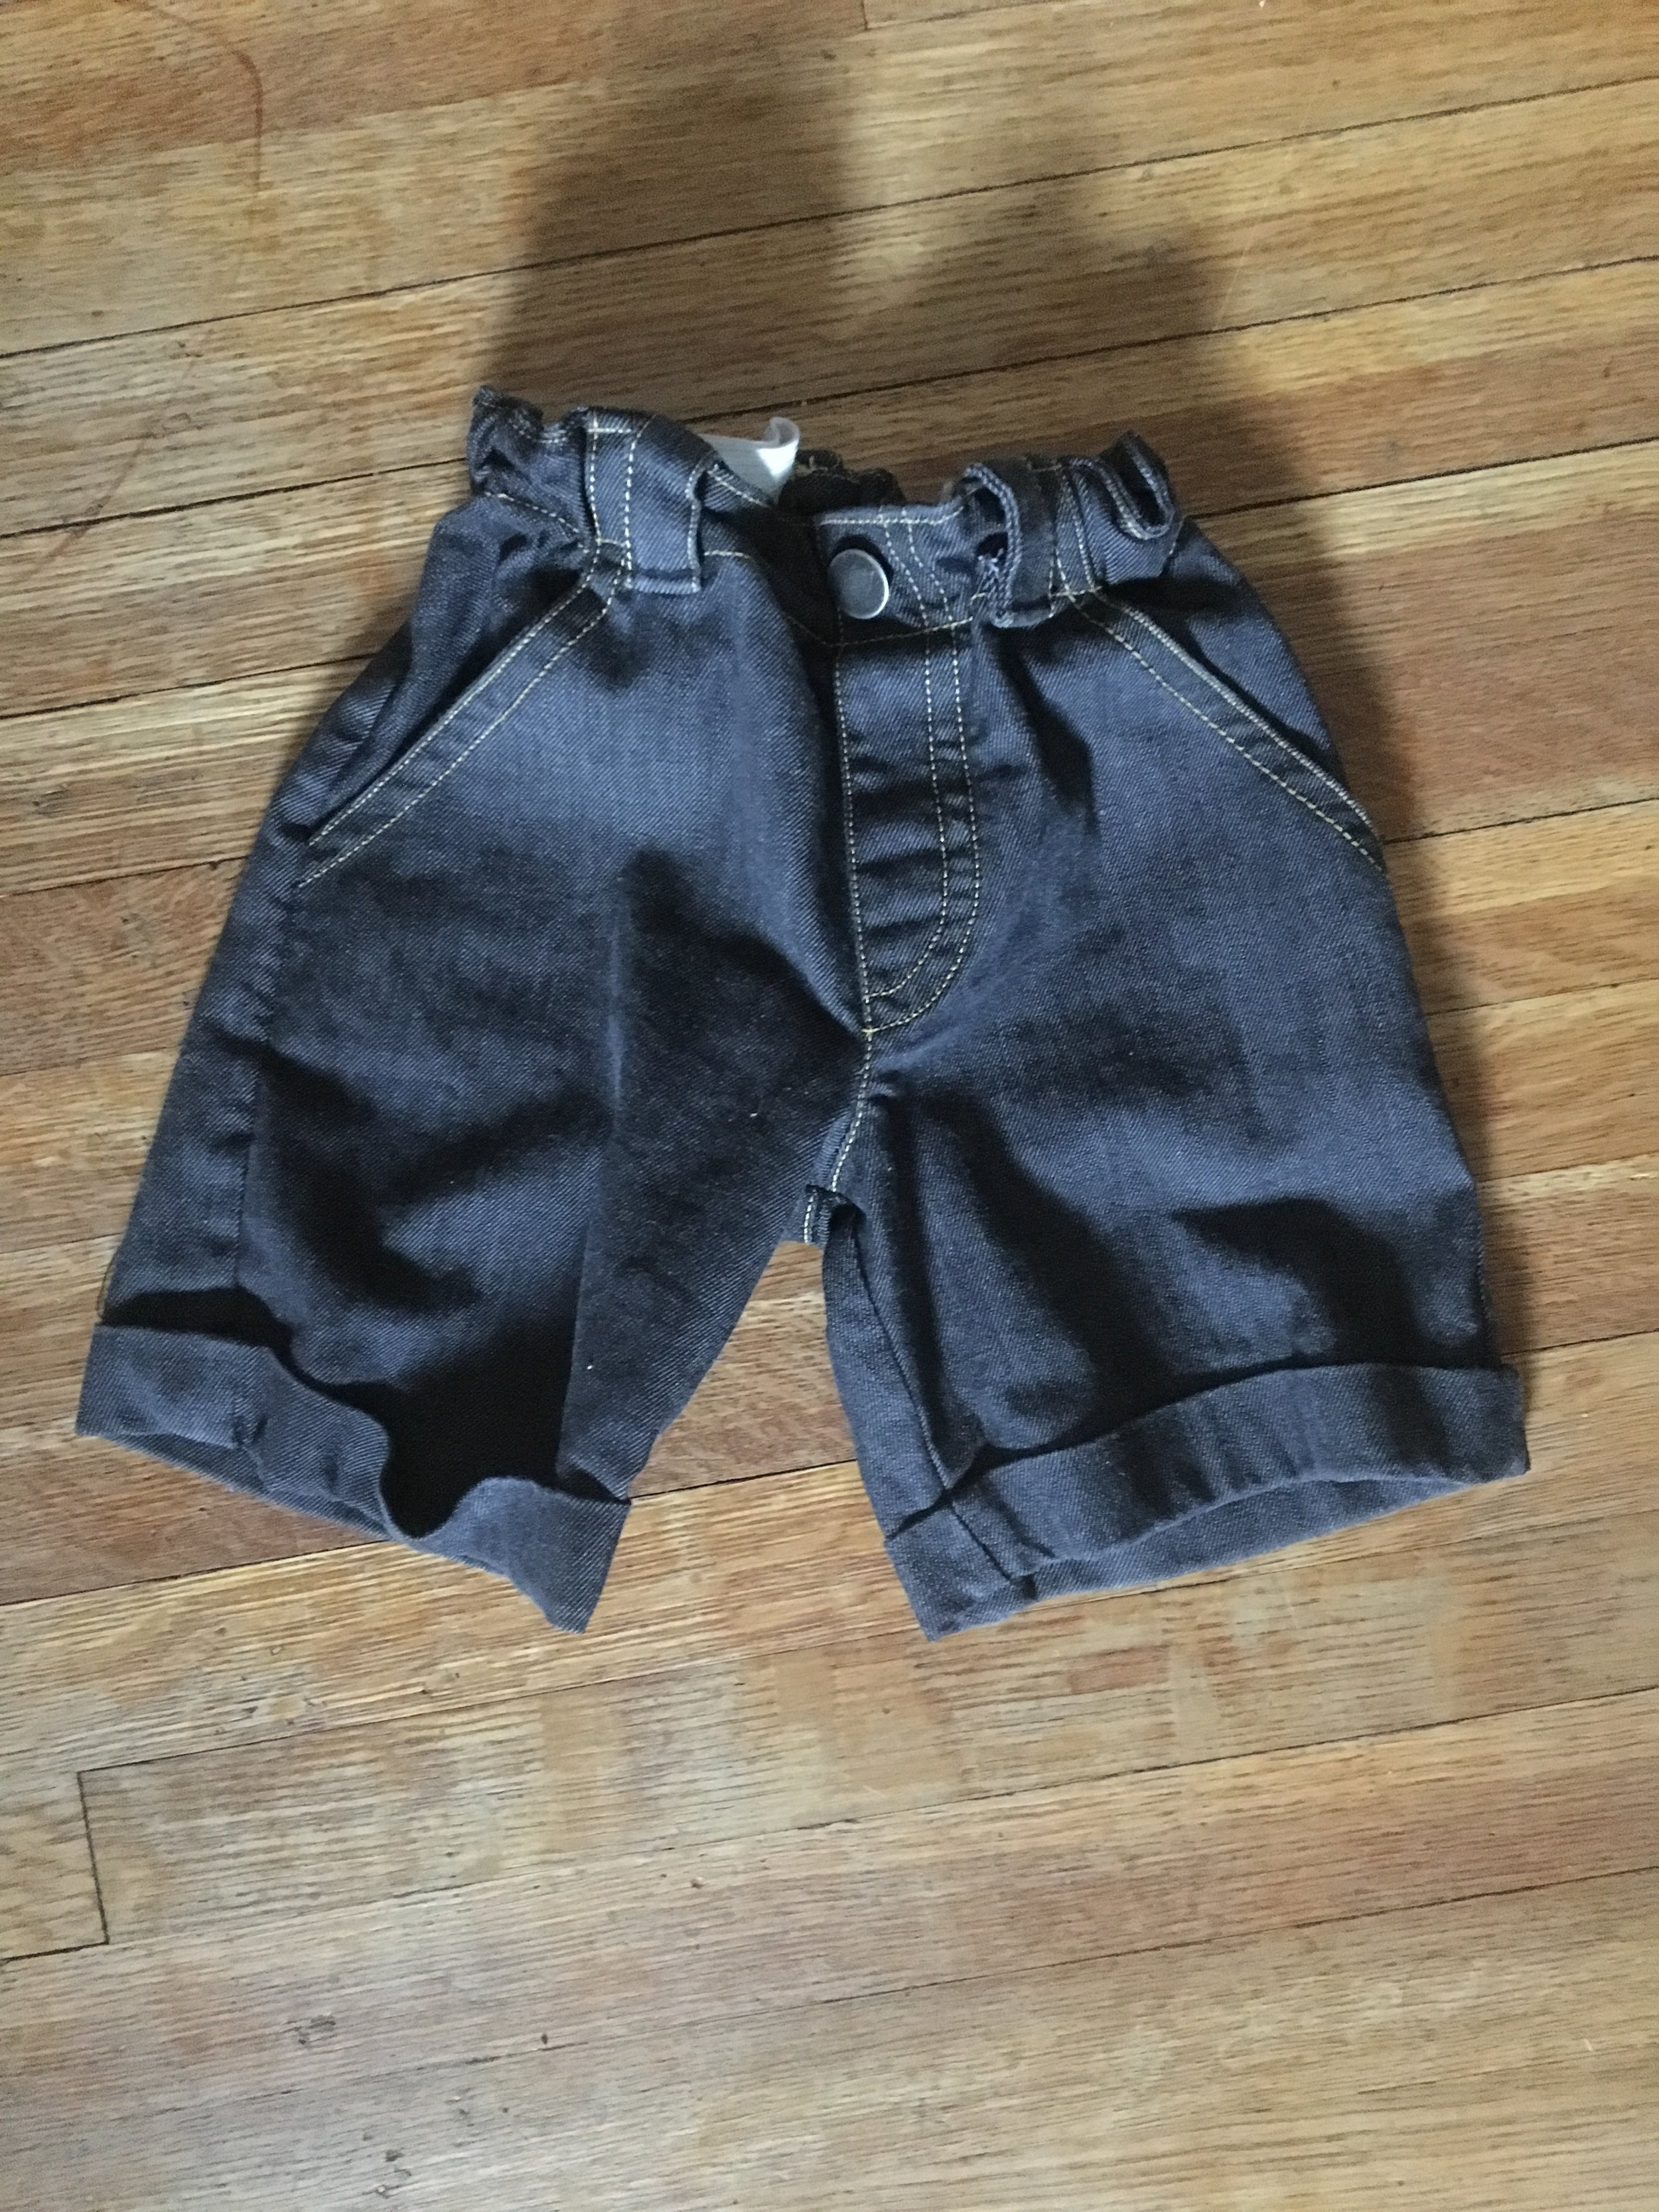 finished jeans shorts cinched to fit child now (visibly pulled in)